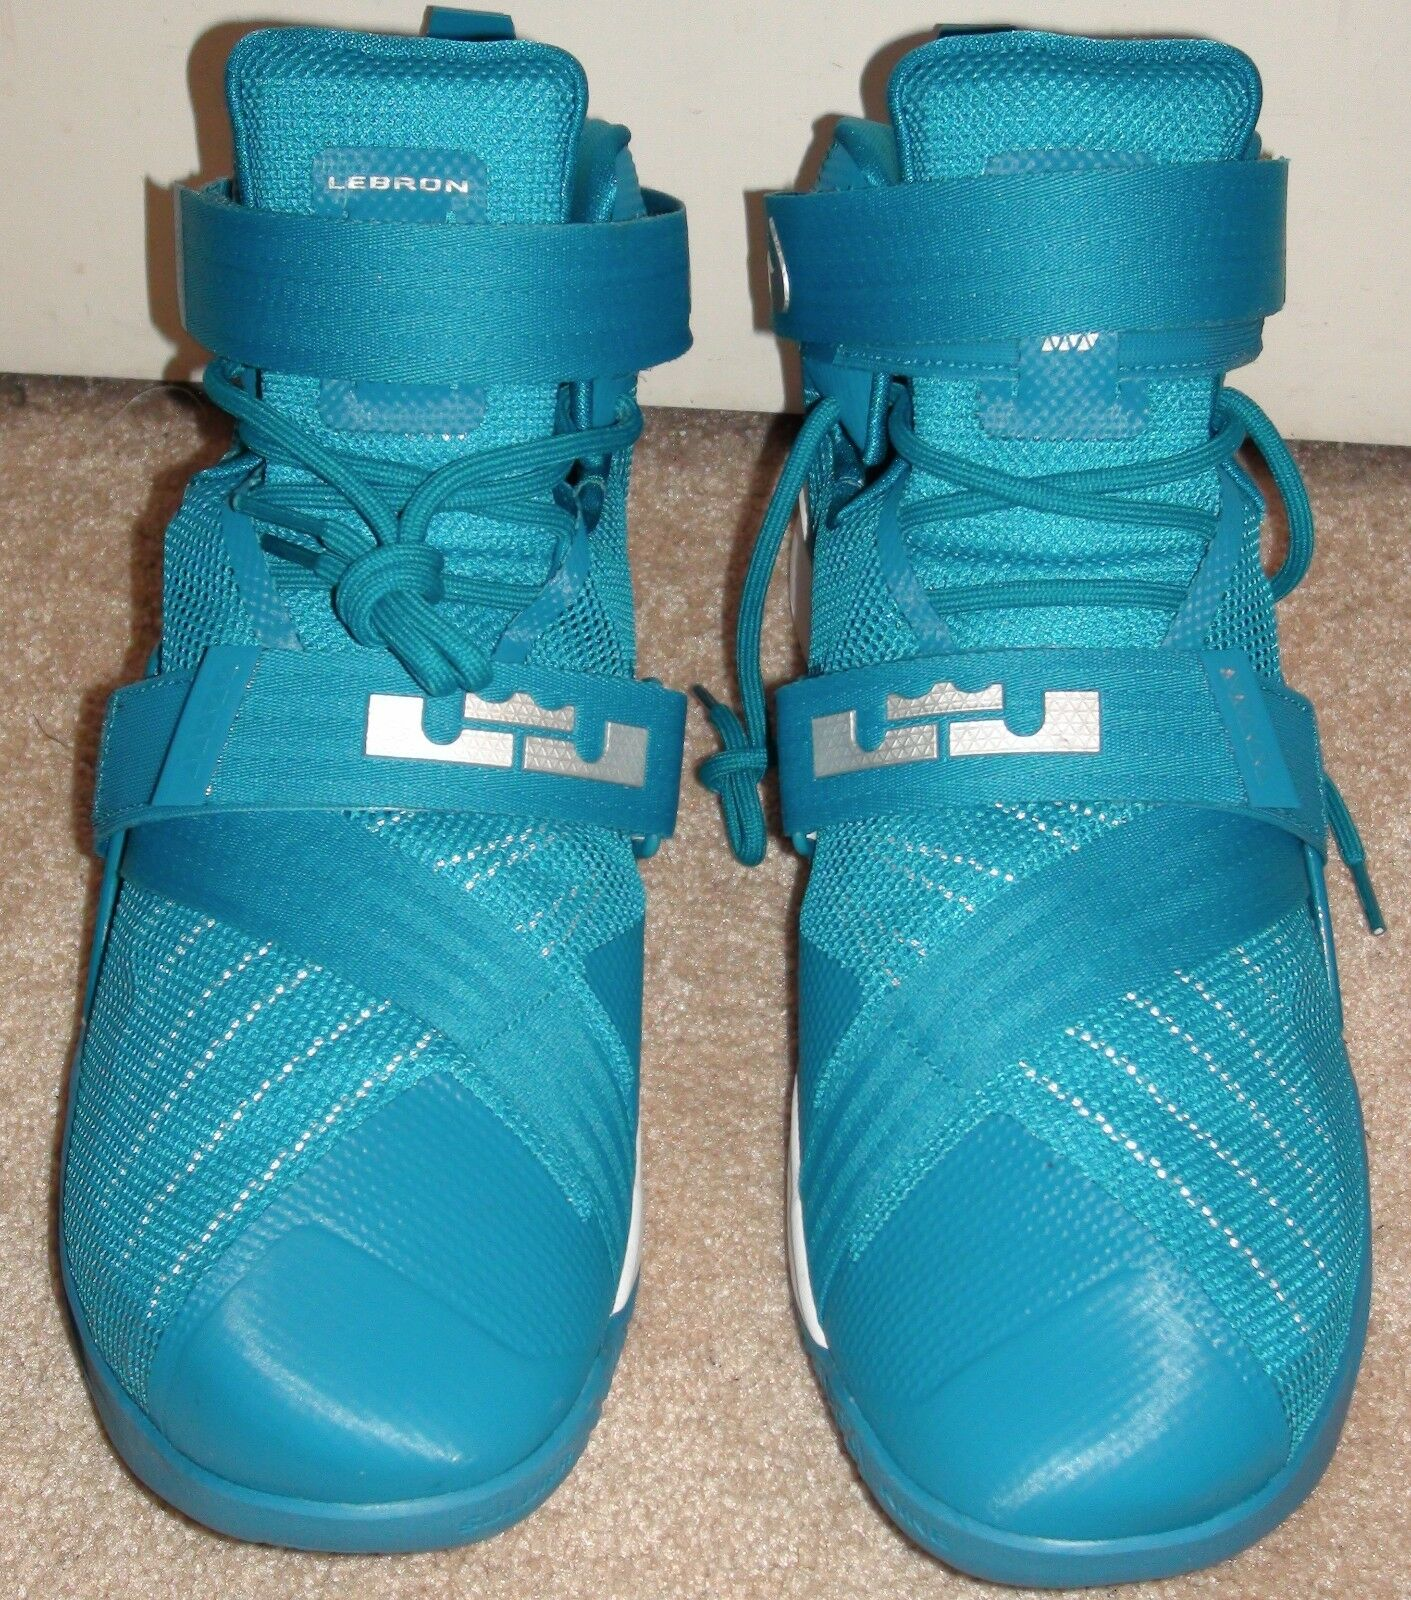 Nike Lebron Soldier IX 9 Basketball Shoes Teal Cavaliers 813264 331 NEW Sz 16